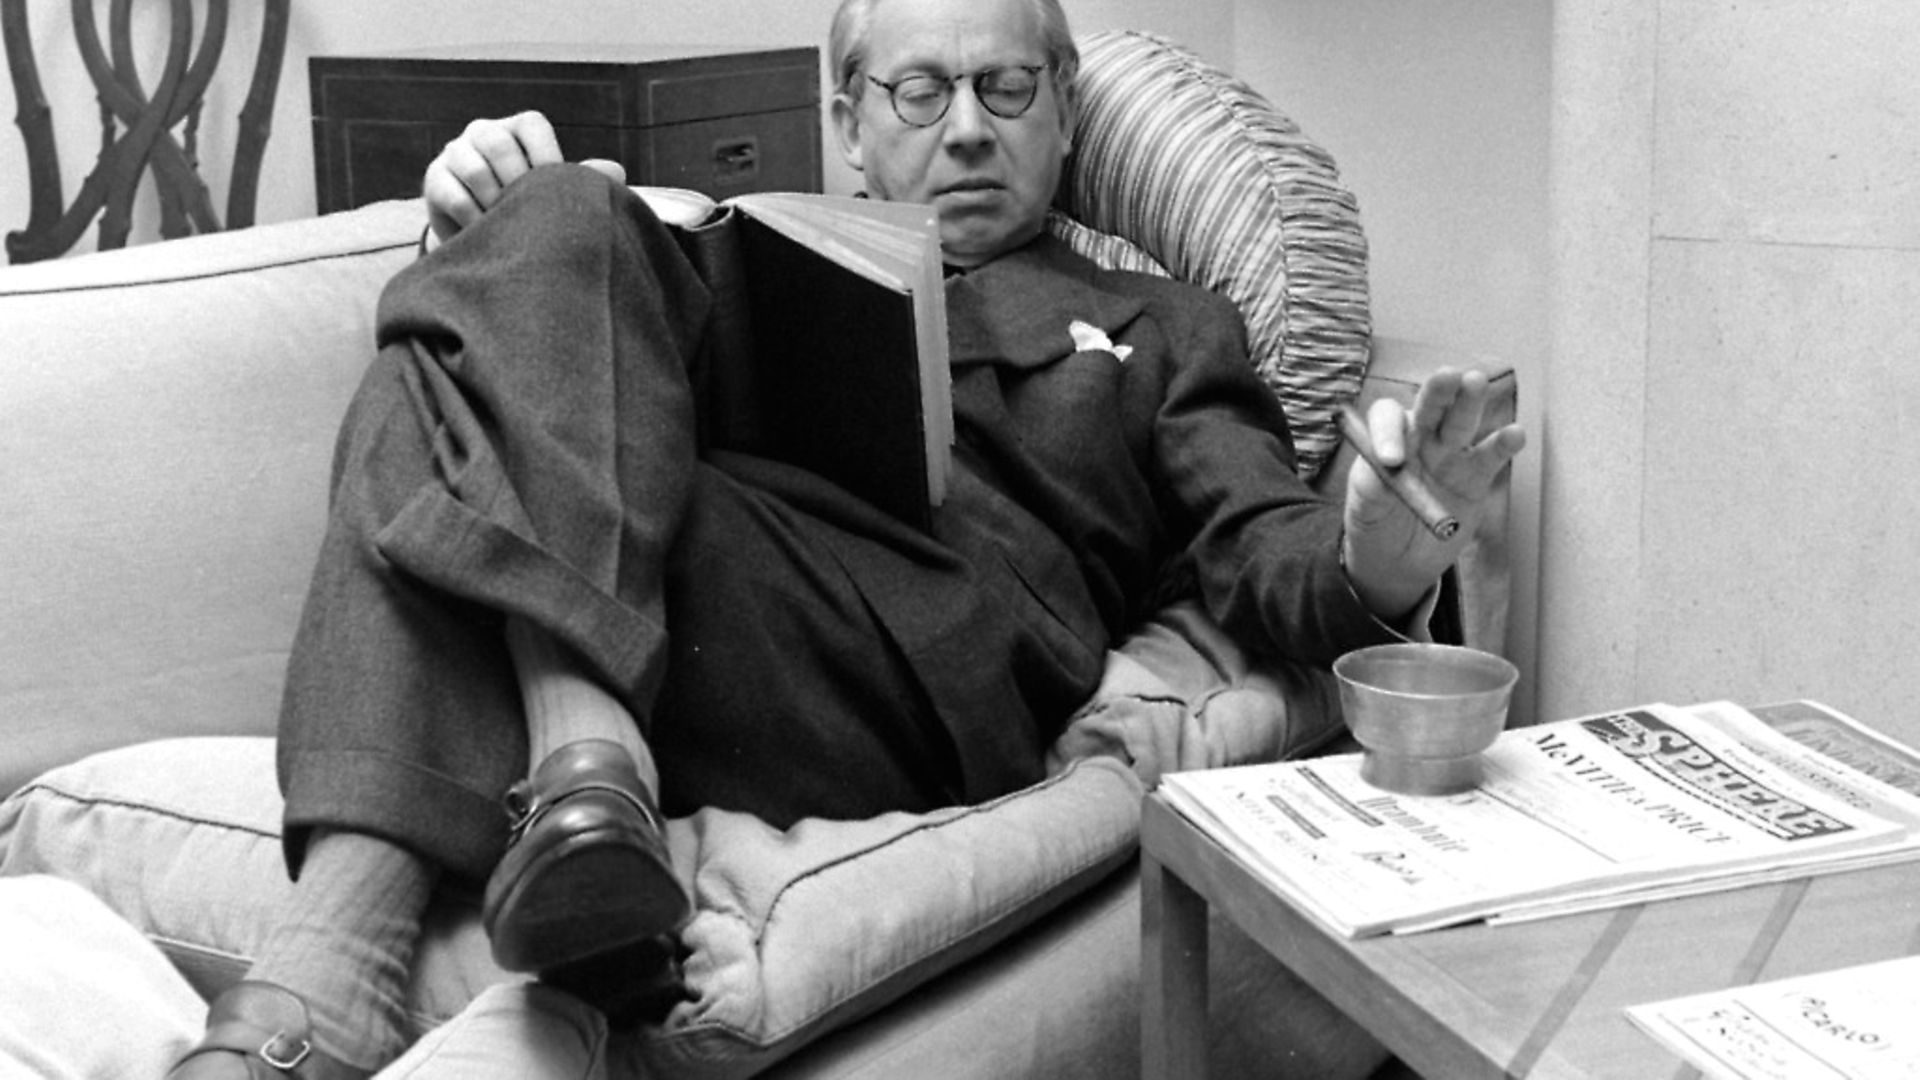 Sir Alexander Korda reading a book on a couch, United Kingdom, 1948 (Photo by Nat Farbman/The LIFE Picture Collection via Getty Images) - Credit: The LIFE Picture Collection via